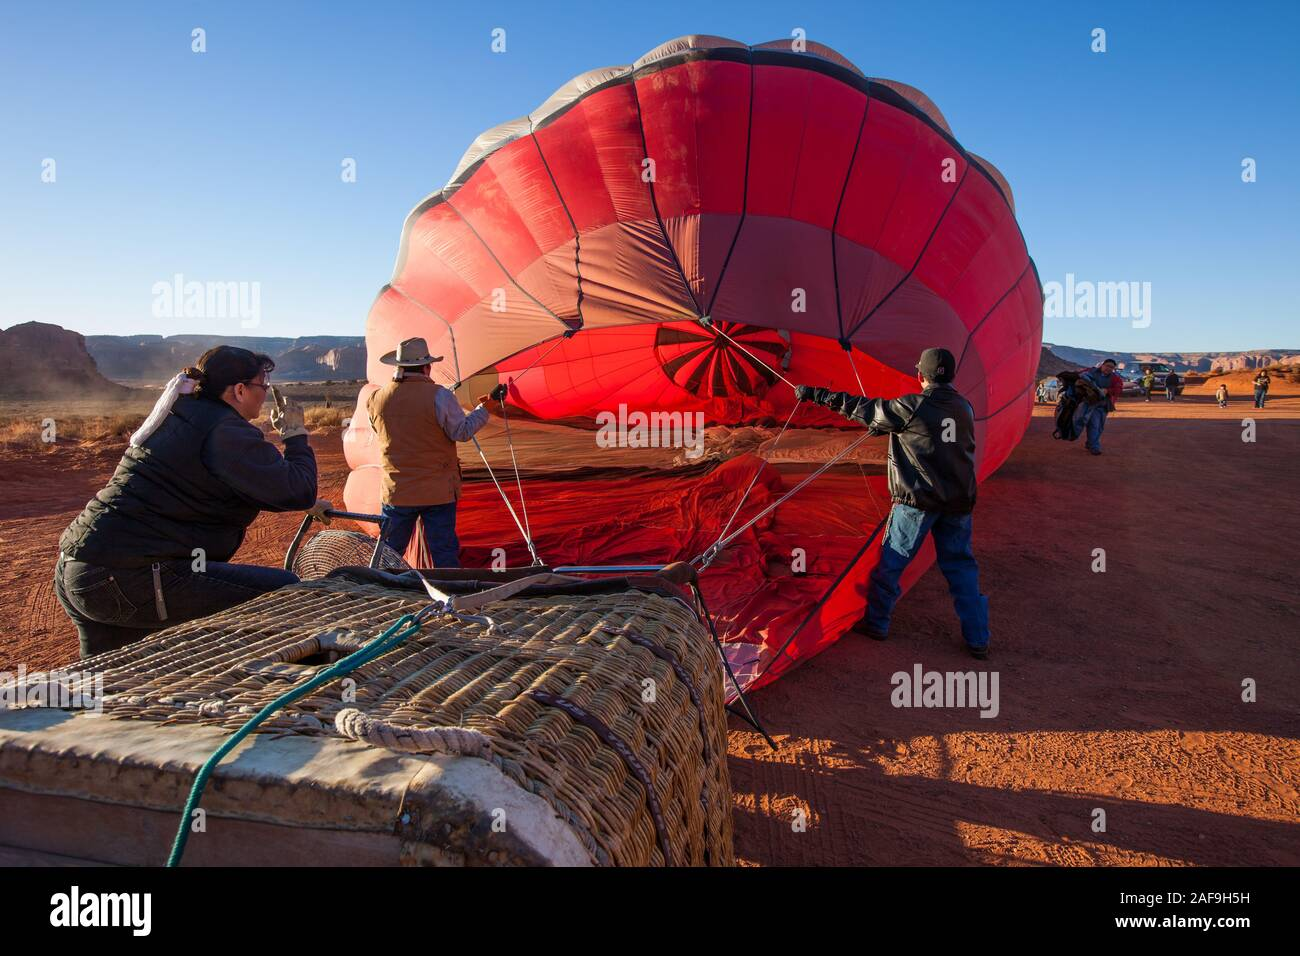 A team inflates a hot balloon in preparation for launch in the Monument Valley Navajo Tribal Park in Arizona. Stock Photo